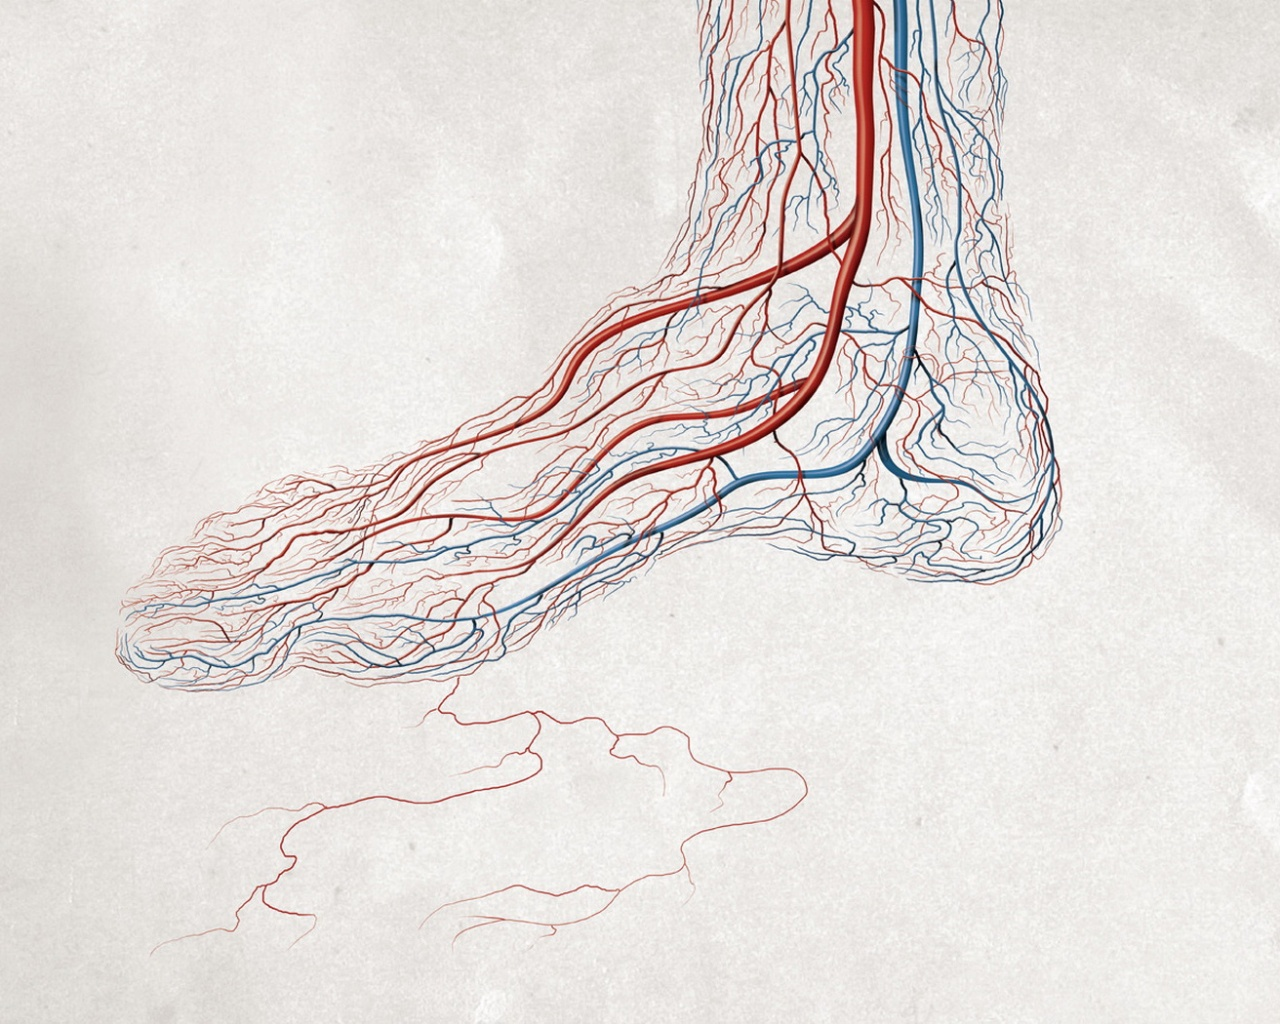 veins in the foot diagram of carbohydrate digestion fractaltastic